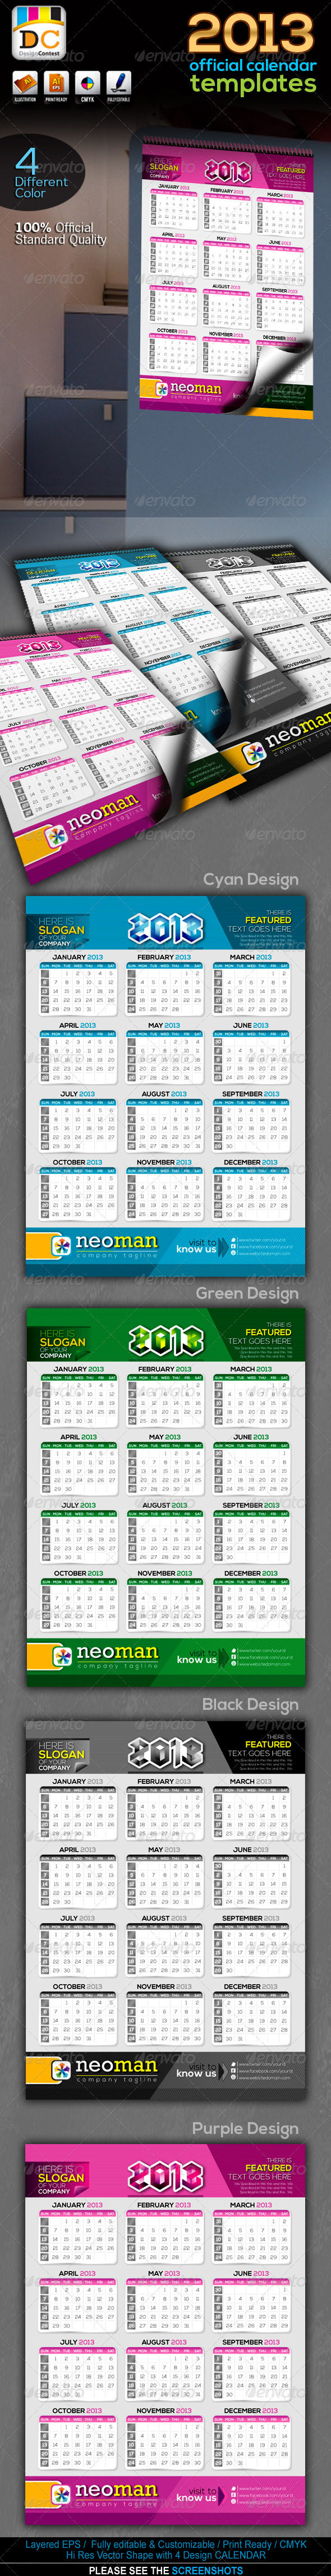 NeoMan_2013 Official Calendar Templates - Calendars Stationery